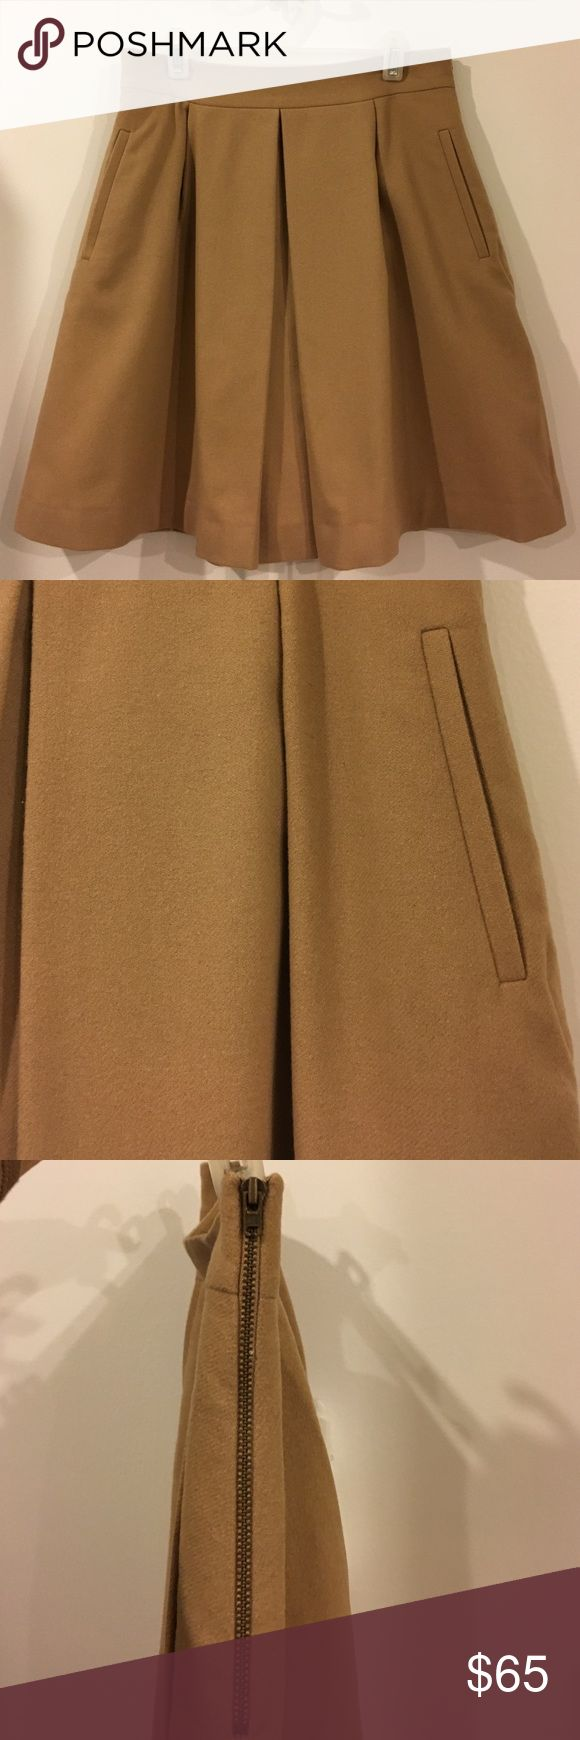 Massimo Dutti wool skirt Stunning classic A-line wool skirt from Massimo Dutti. Only worn a few times and still feels brand new. Flared with side zip fastening and full lining. Great addition to any closet as the temperature drops! Pairs great with tights and heels or with boots. Massimo Dutti Skirts Mini